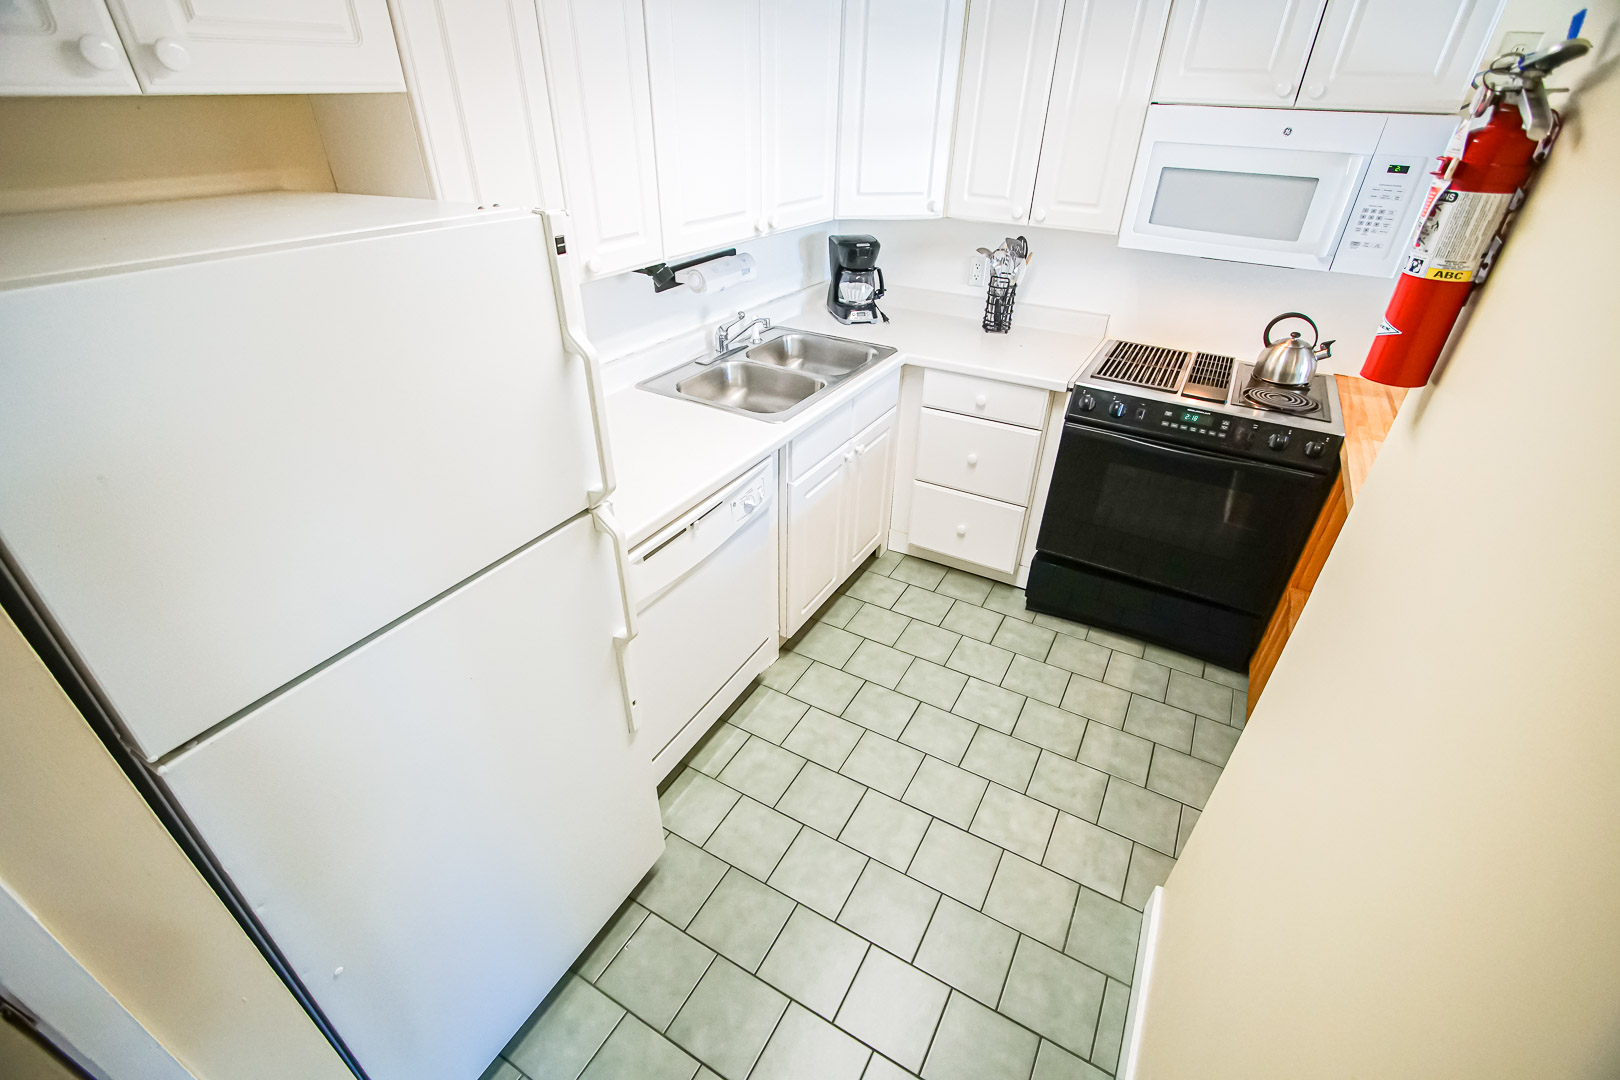 A clean kitchen area at VRI's Village of Loon Mountain in New Hampshire.